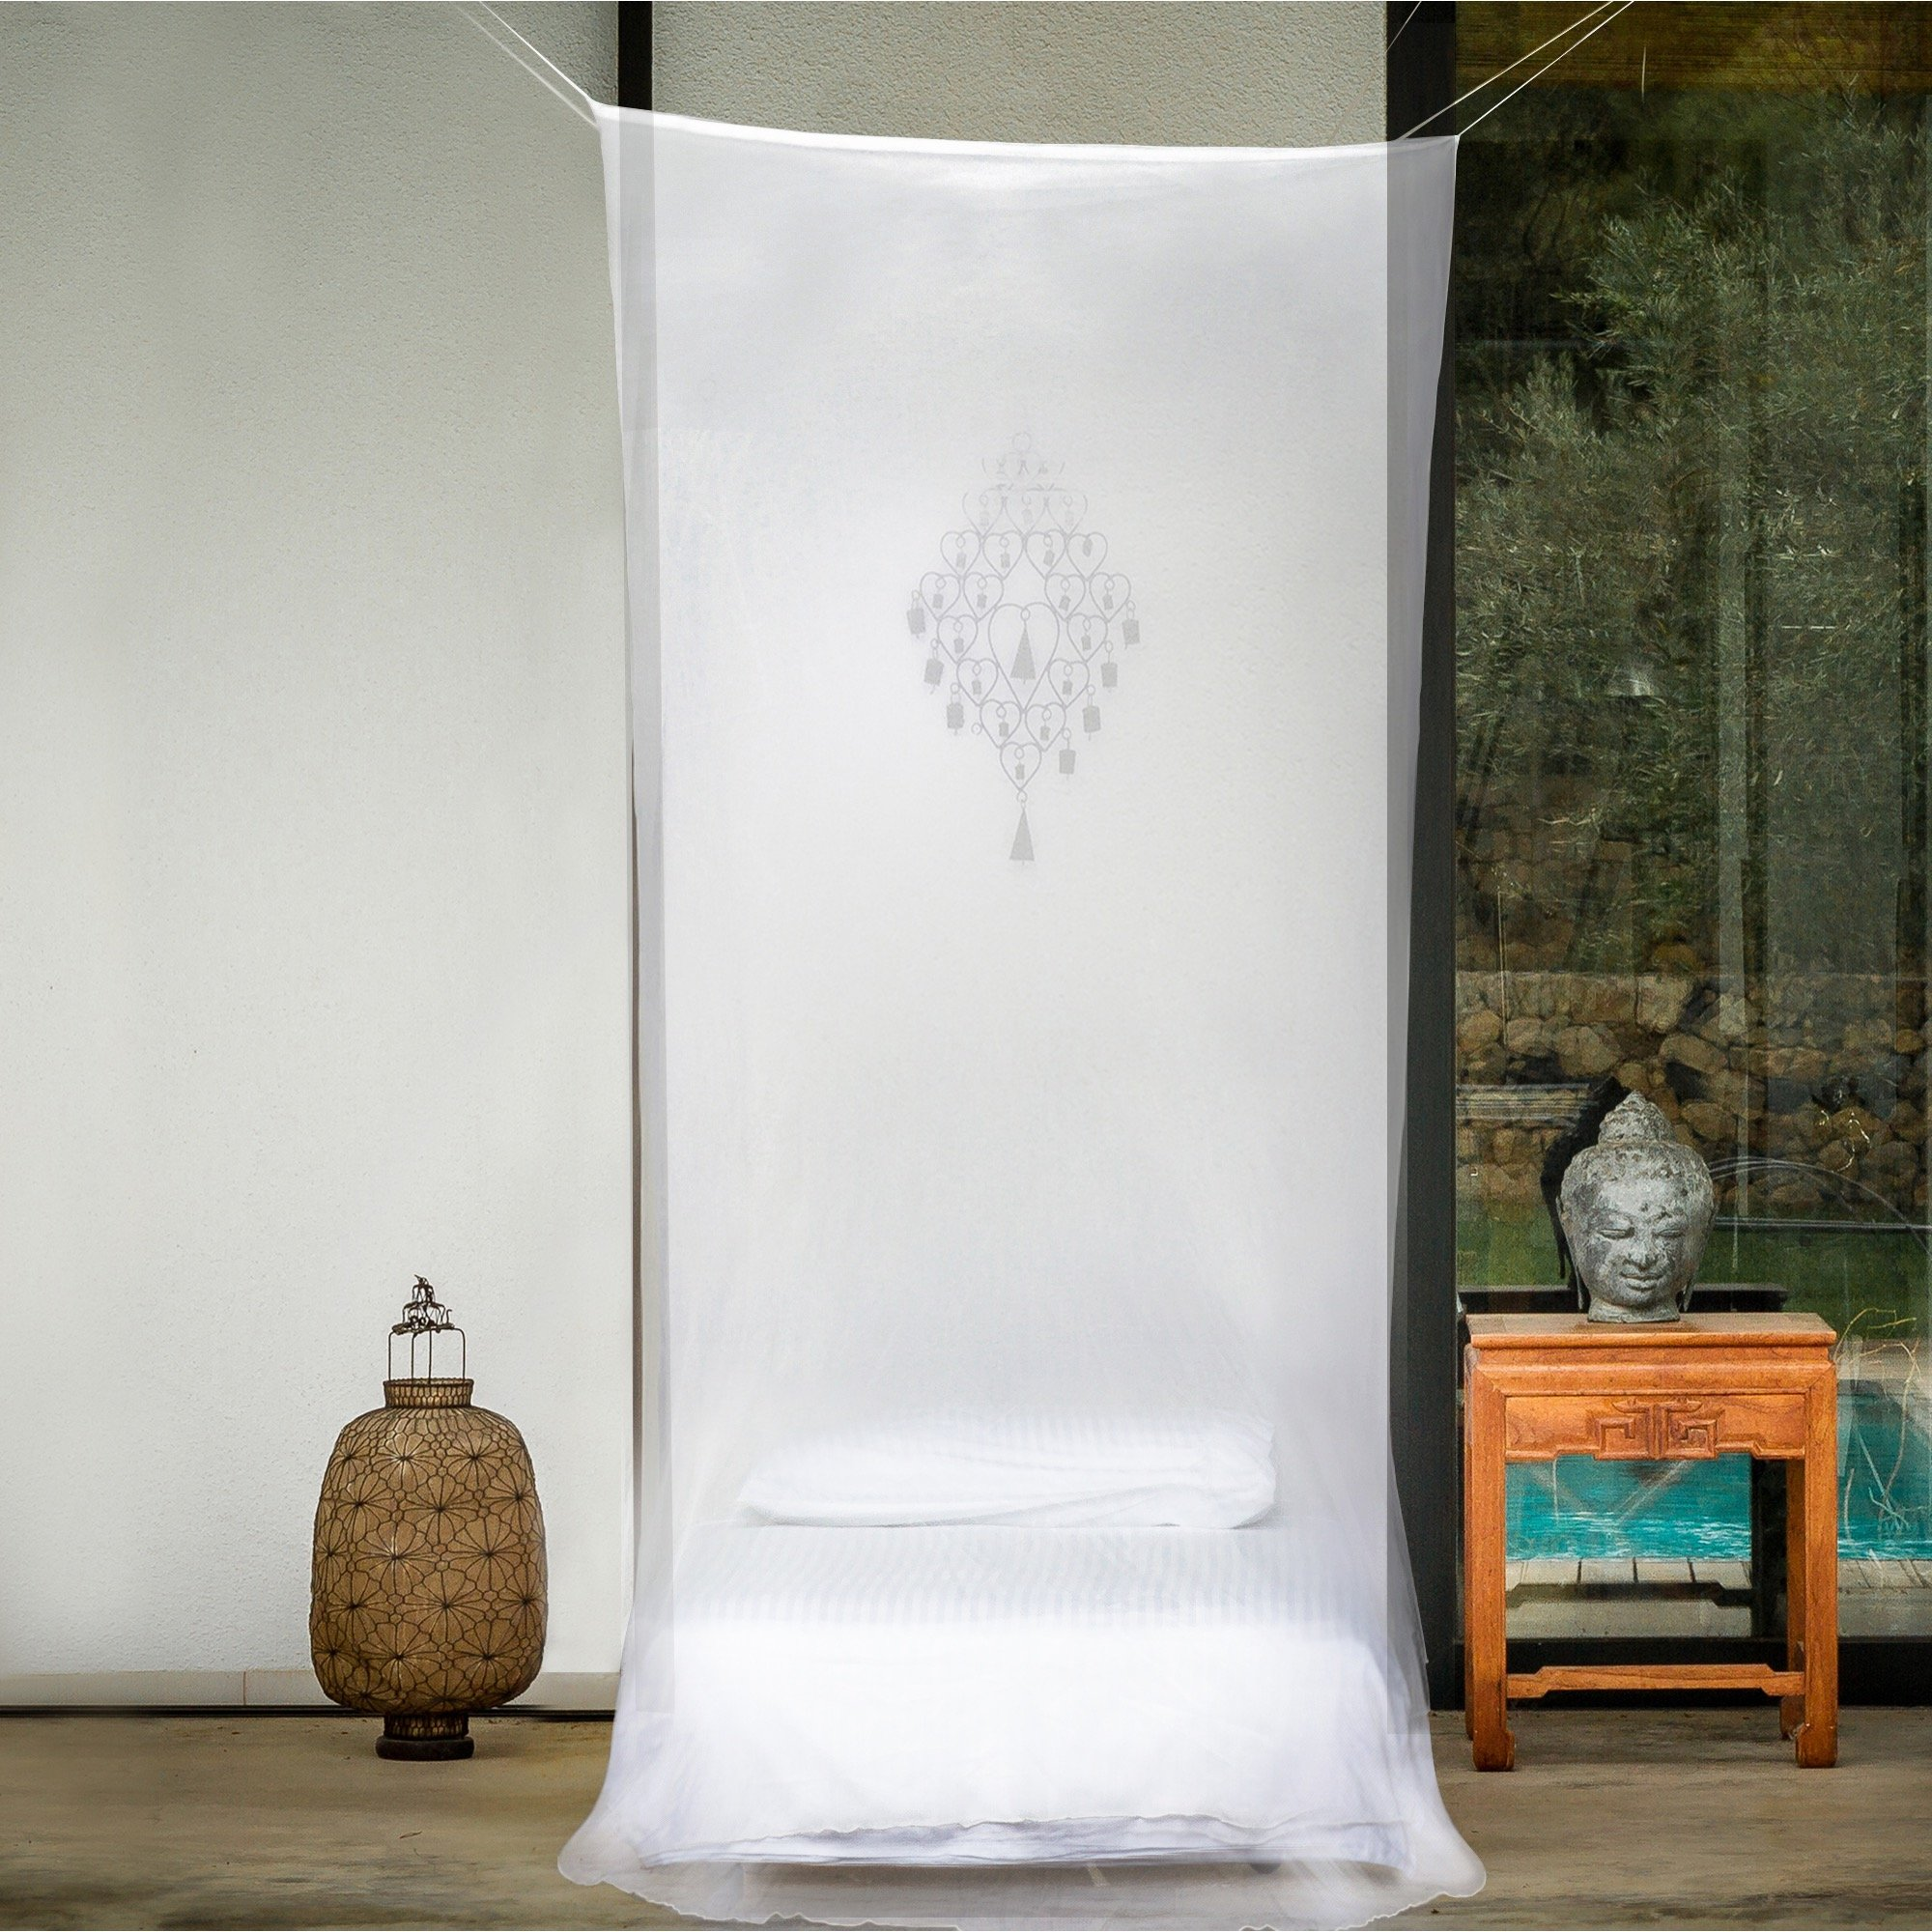 EVEN Naturals MOSQUITO NET for Bed Canopy, Tent for Cot, Single to Twin XL Size, Square Curtains, White Mosquito Netting with Opening, Easy Installation, Carry Bag